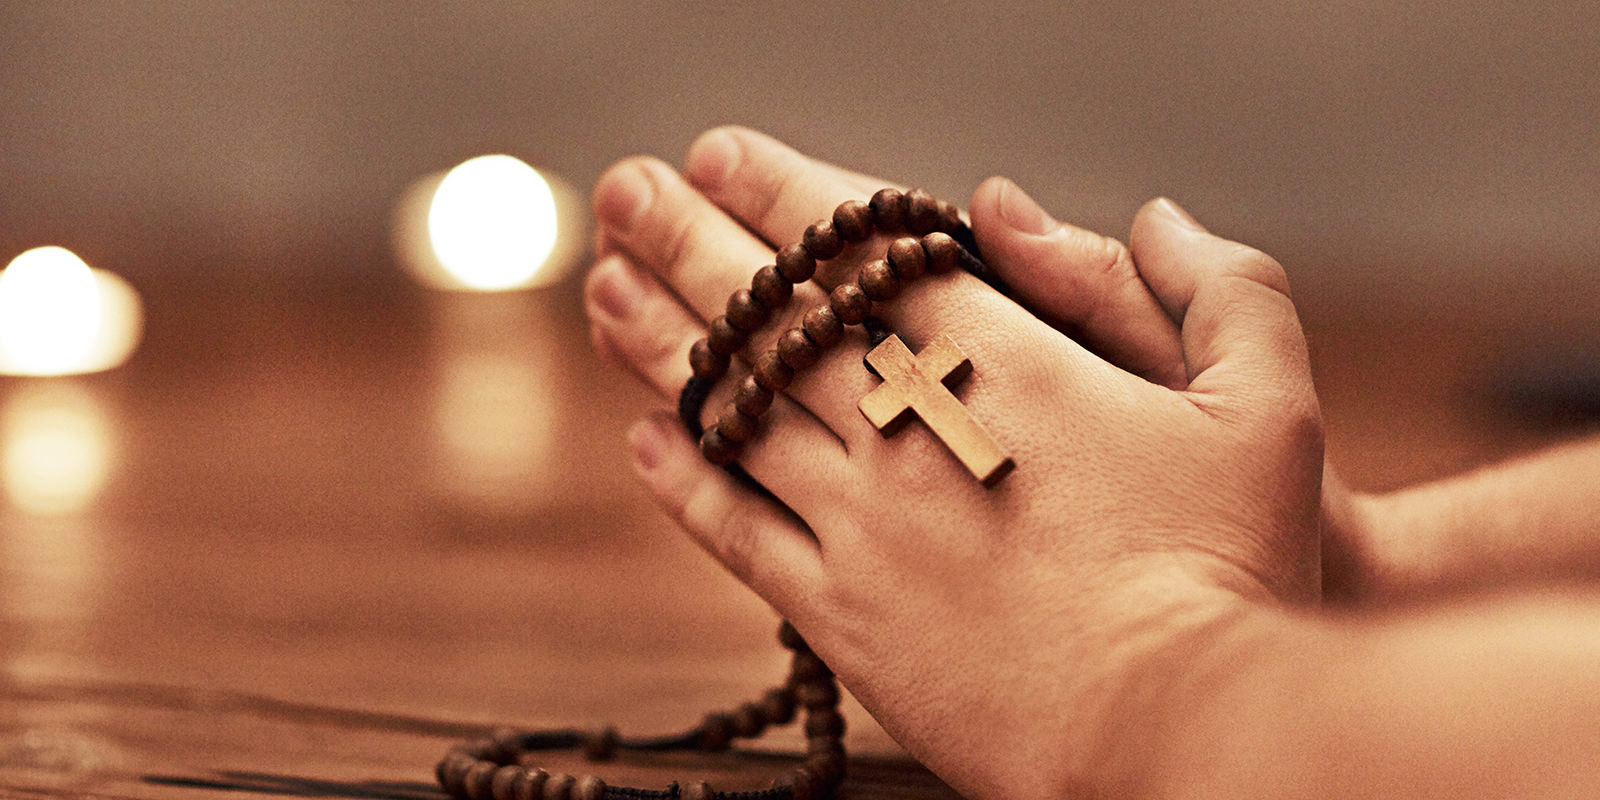 Hands in prayer with rosary